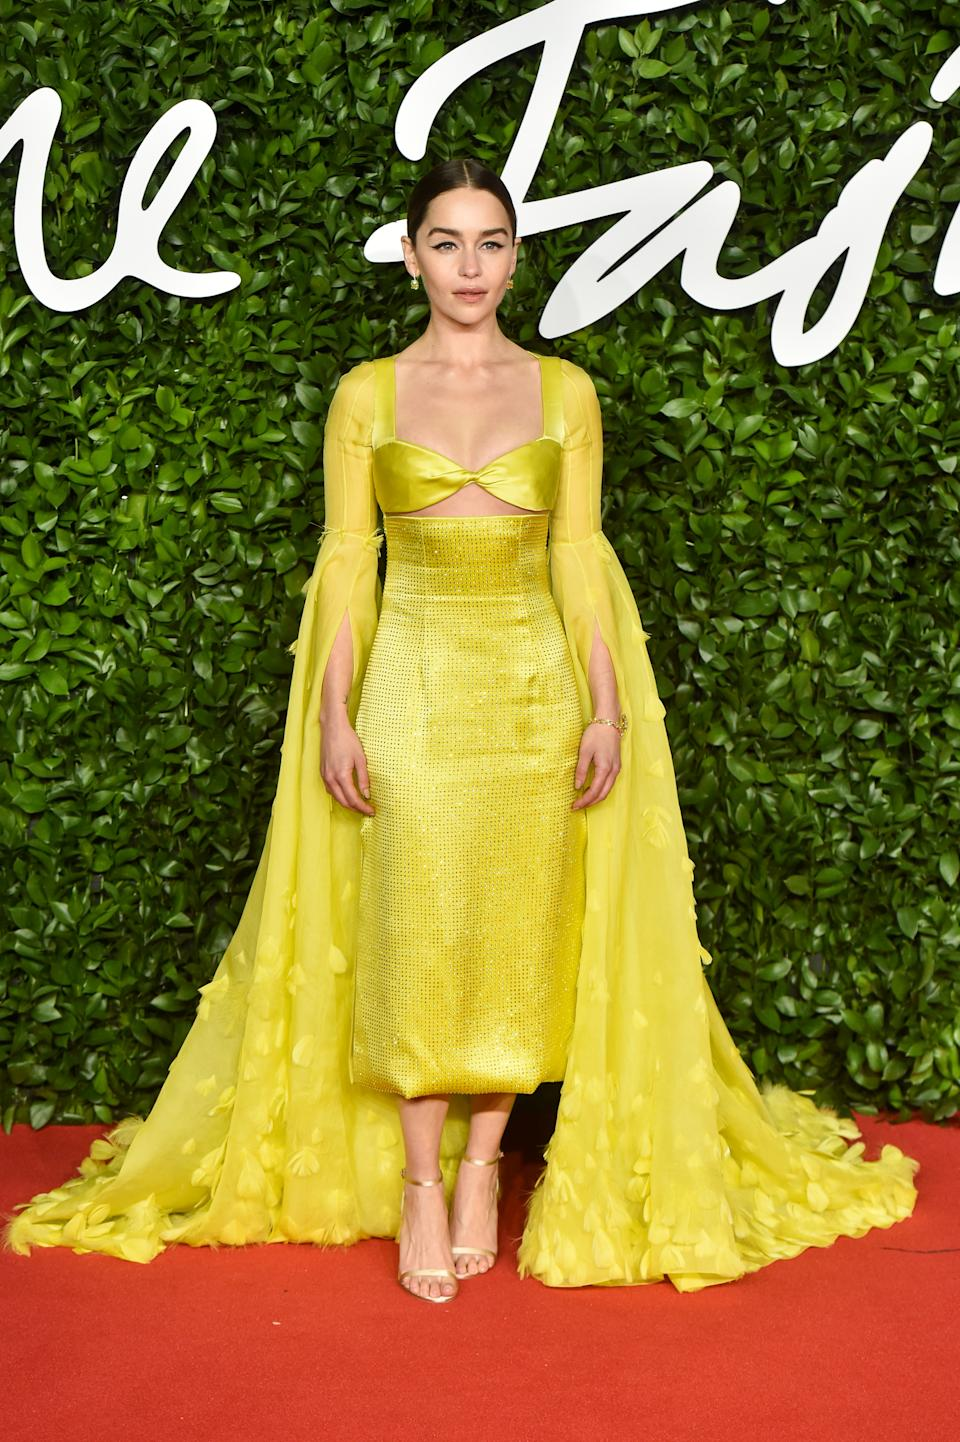 Emilia Clarke wore a canary yellow Schiaparelli gown to present the Isabella Blow Award for Fashion Creator [Photo: Getty]